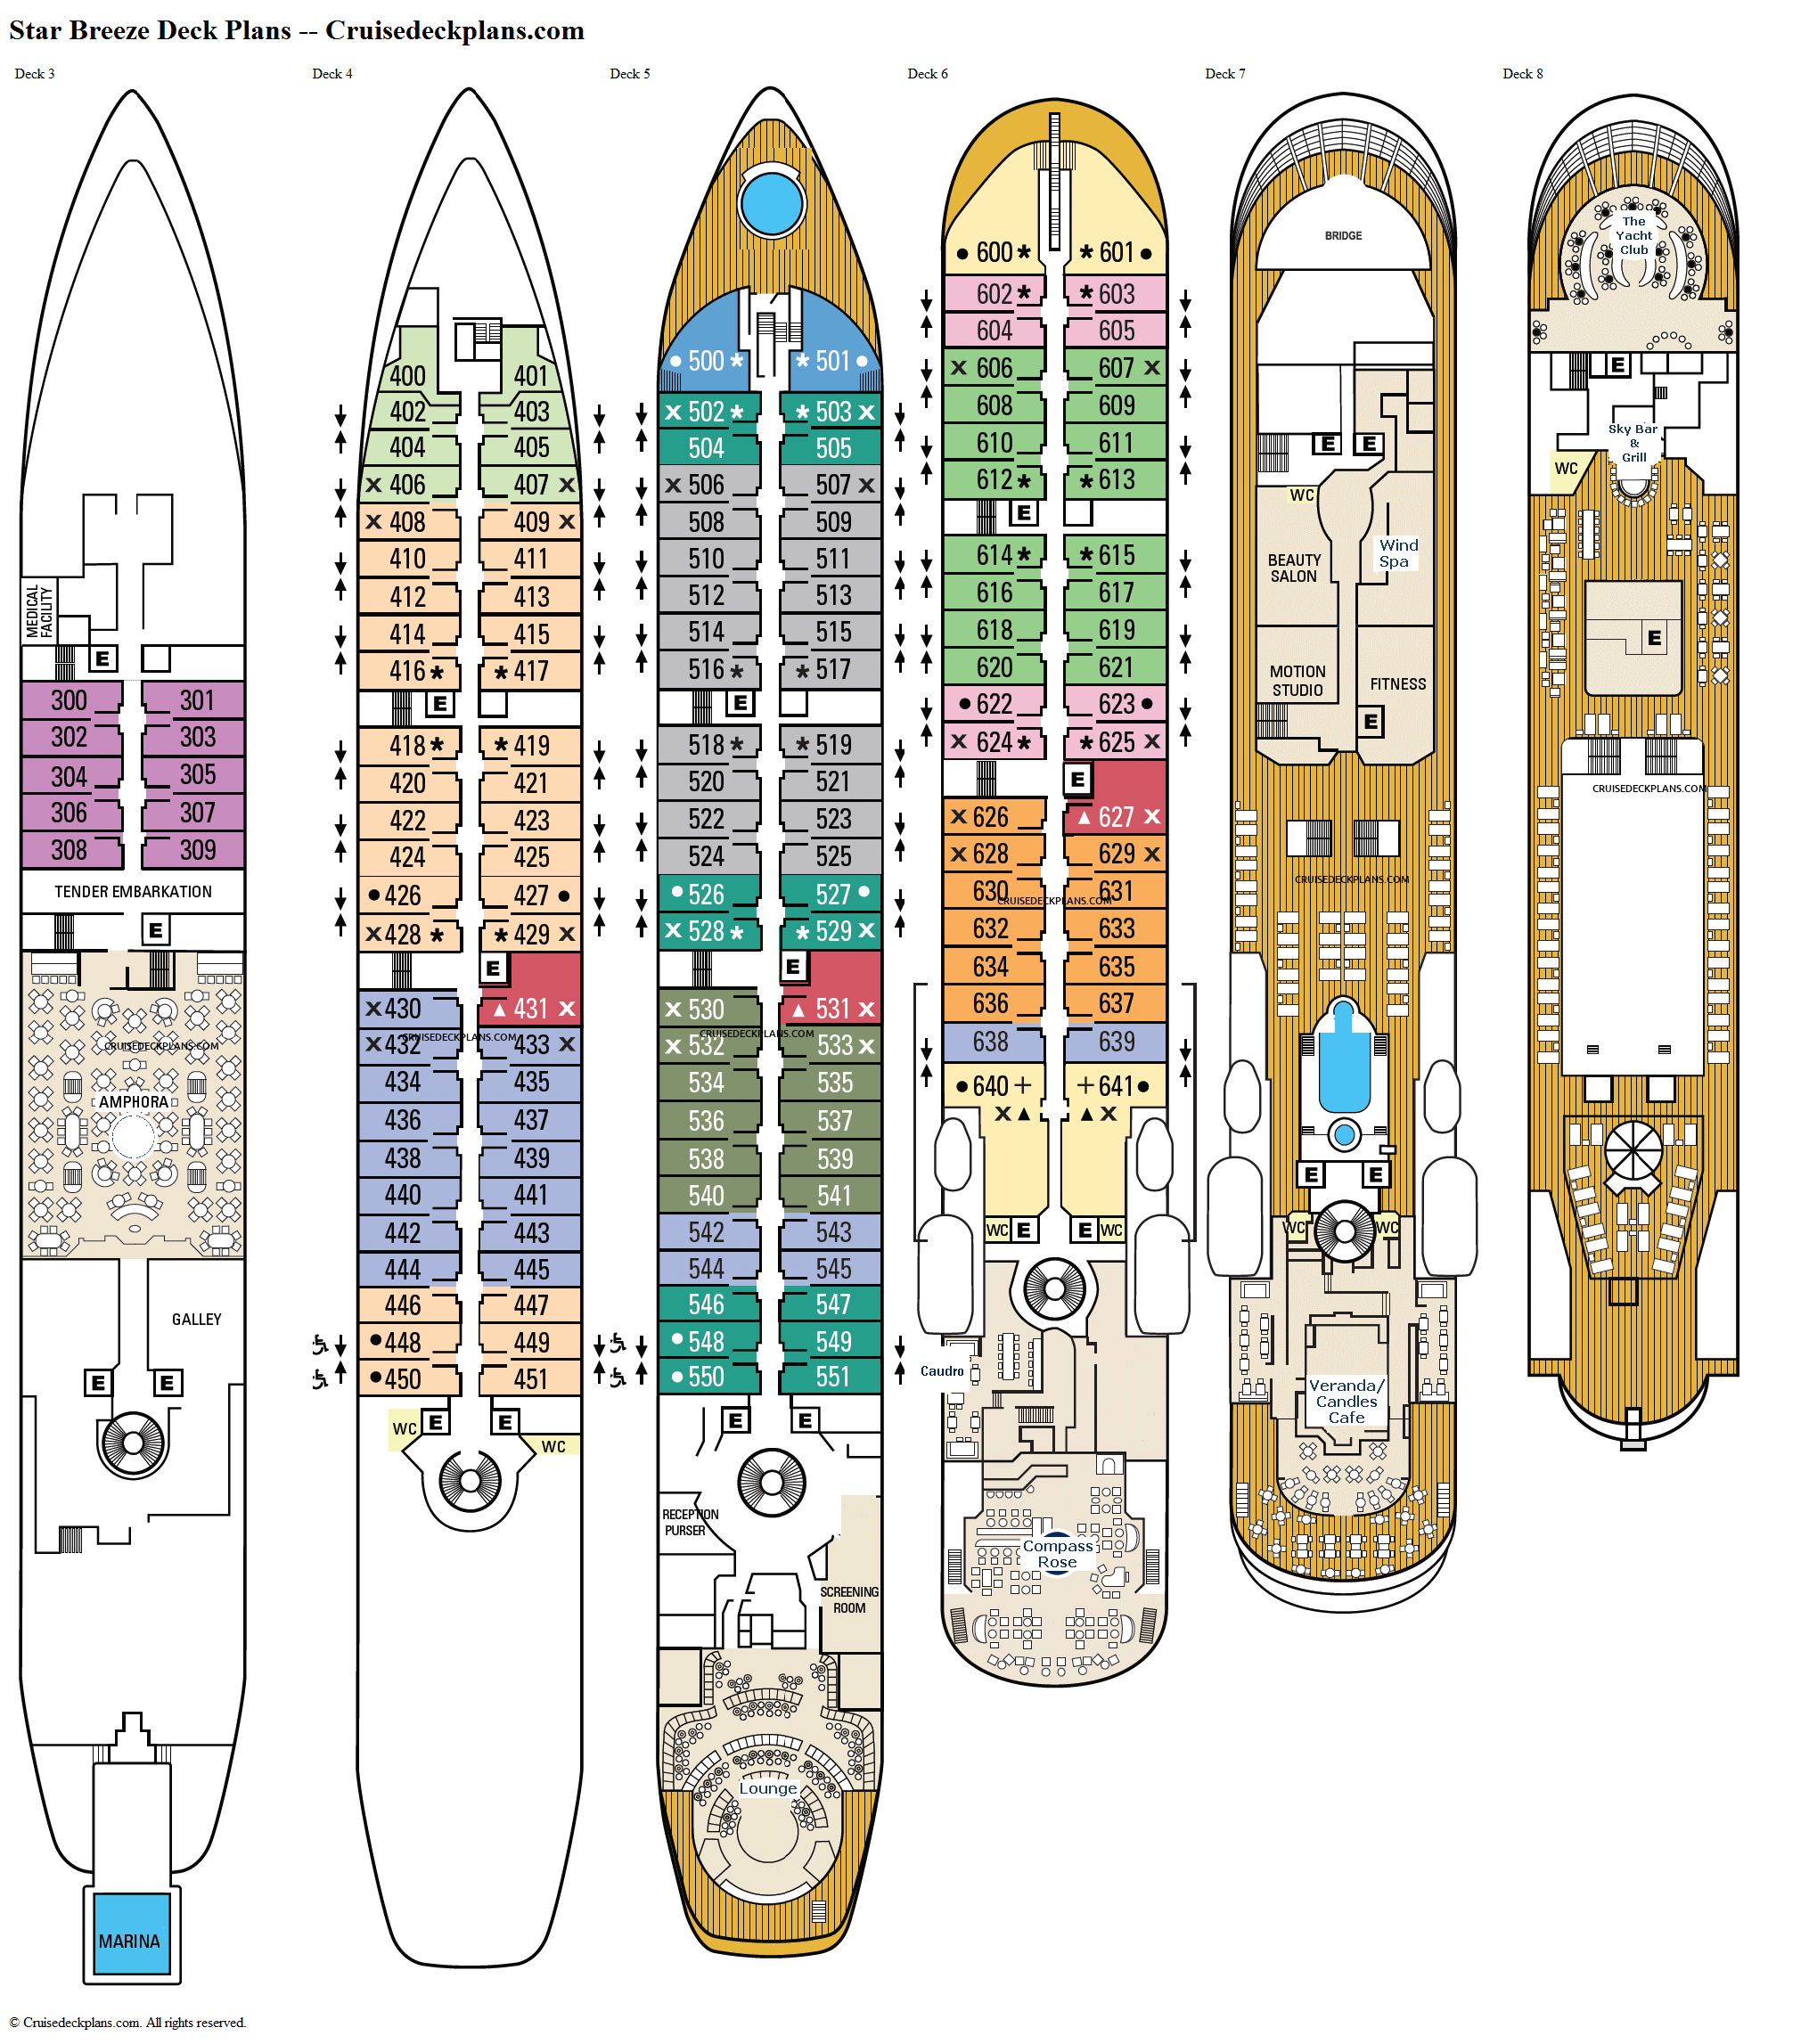 Star Breeze deck plans image